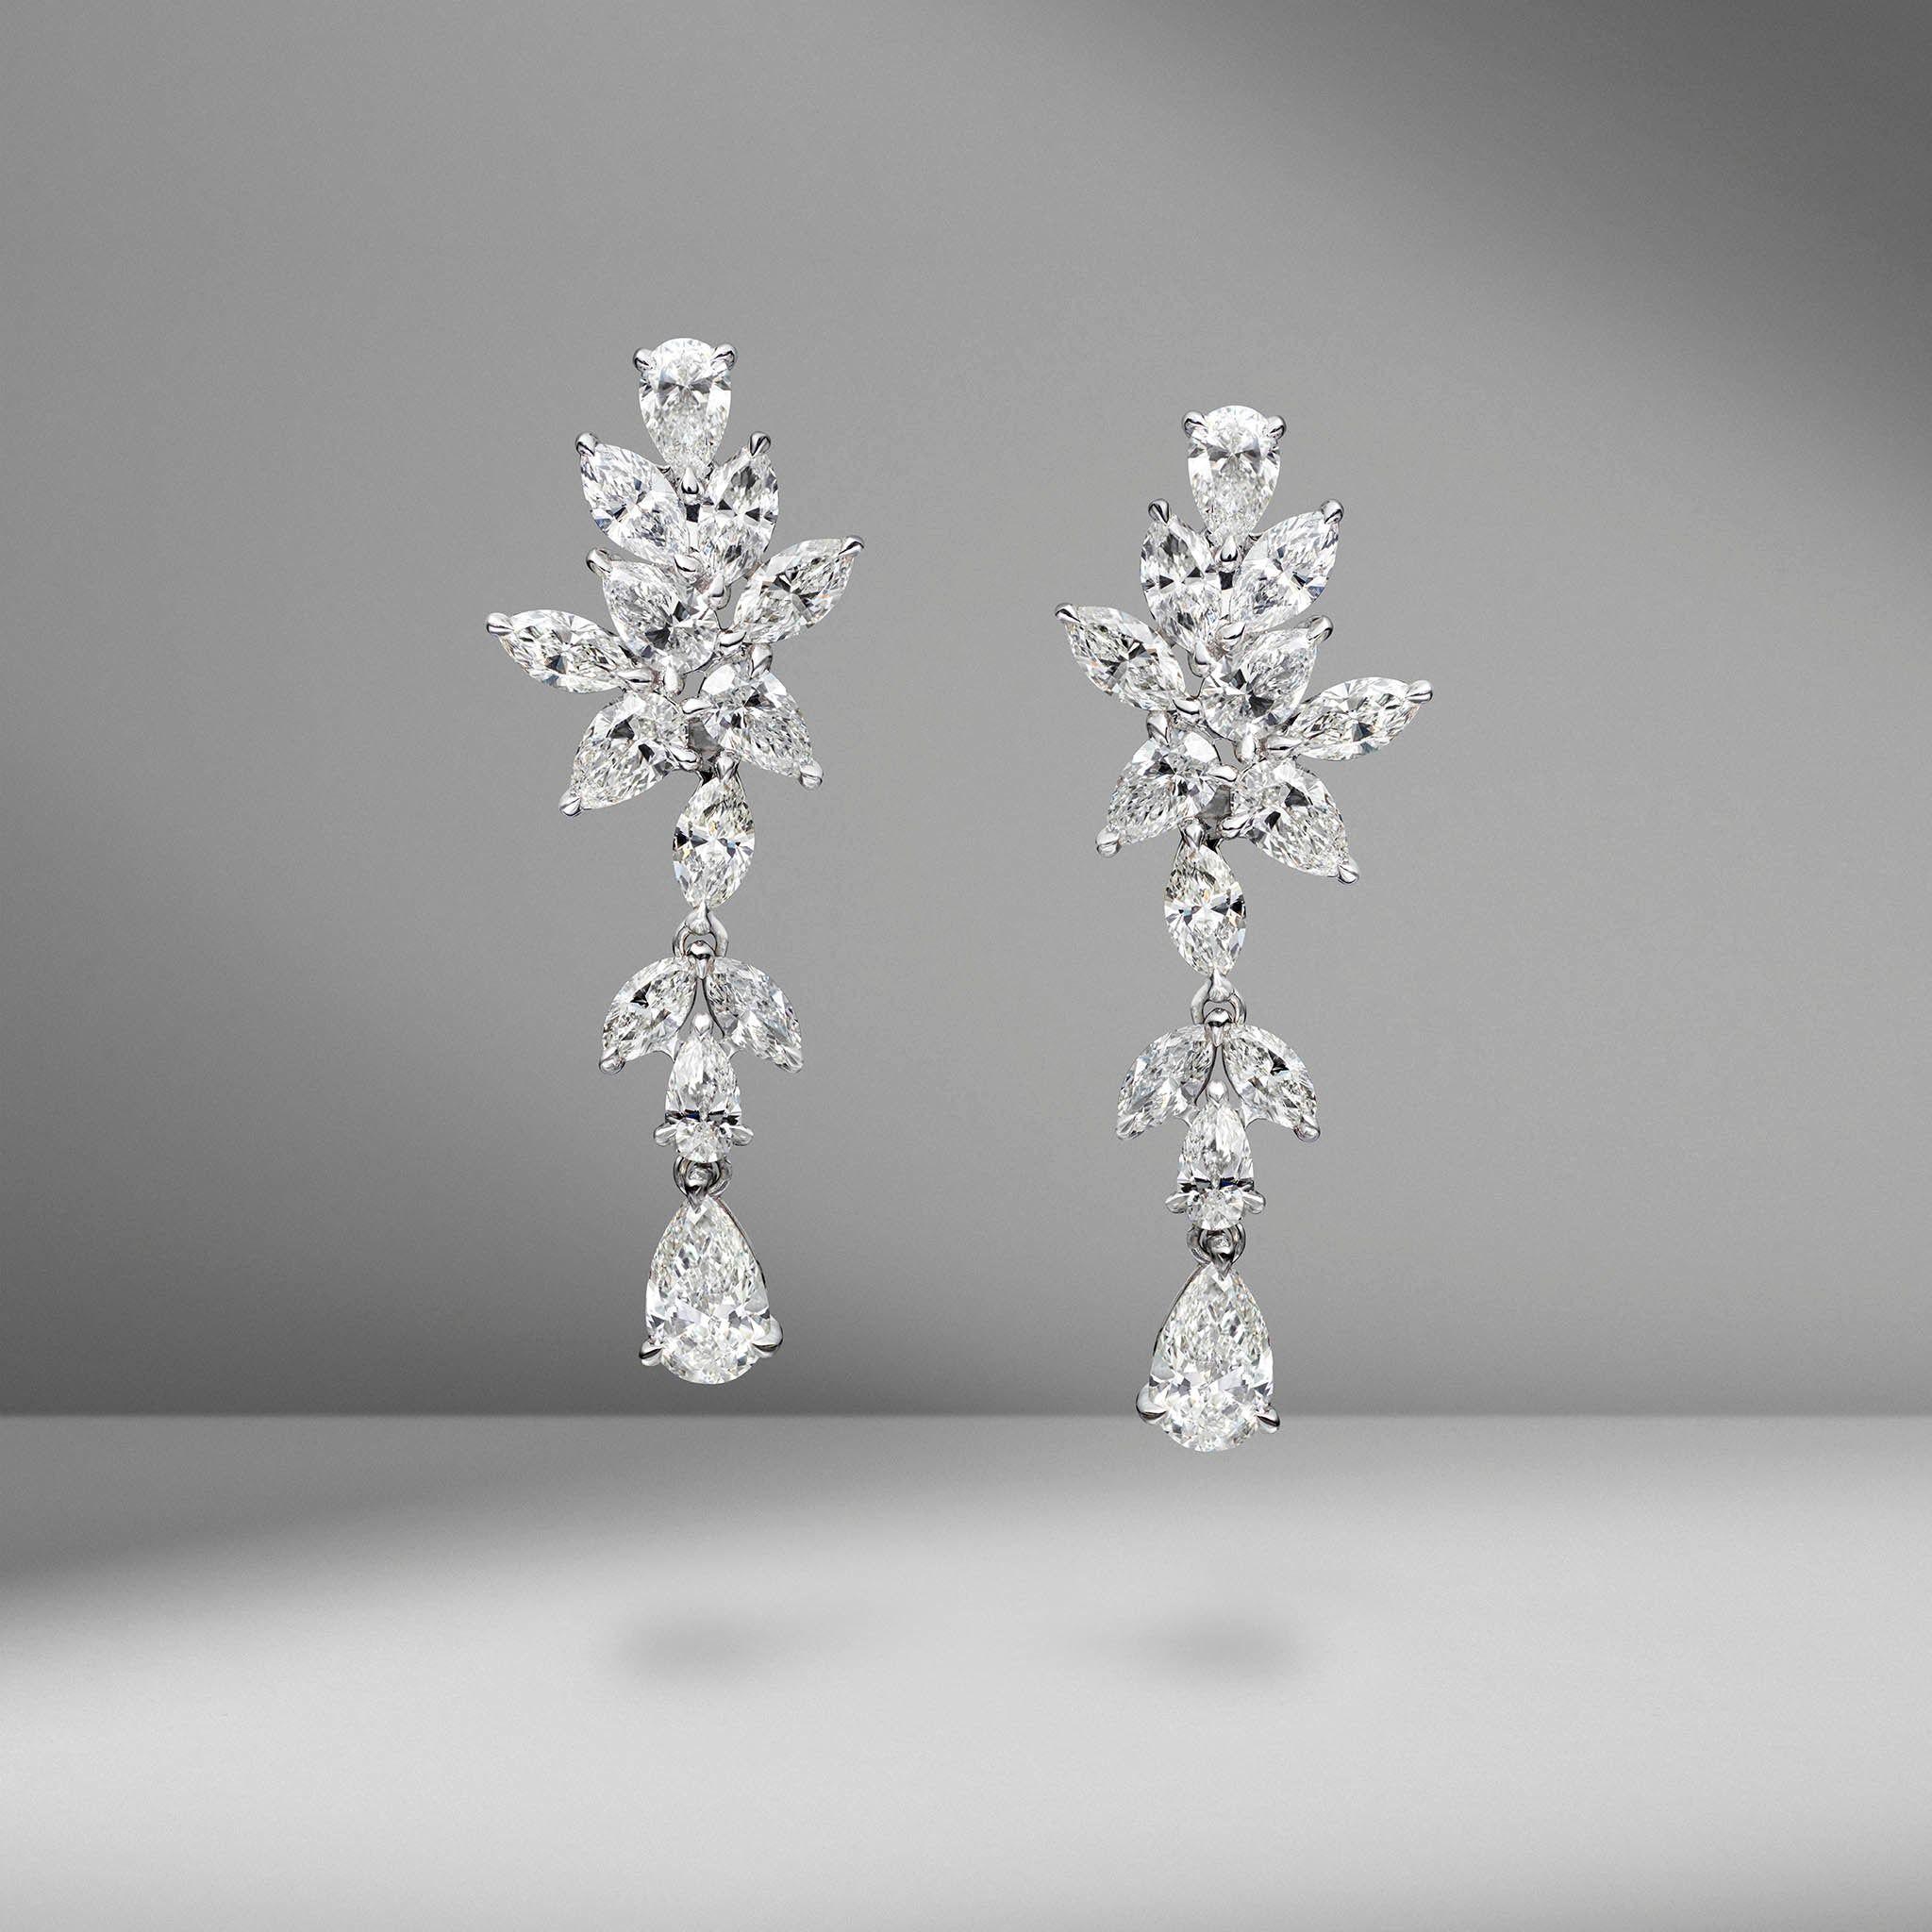 The Luna Diamond Earrings